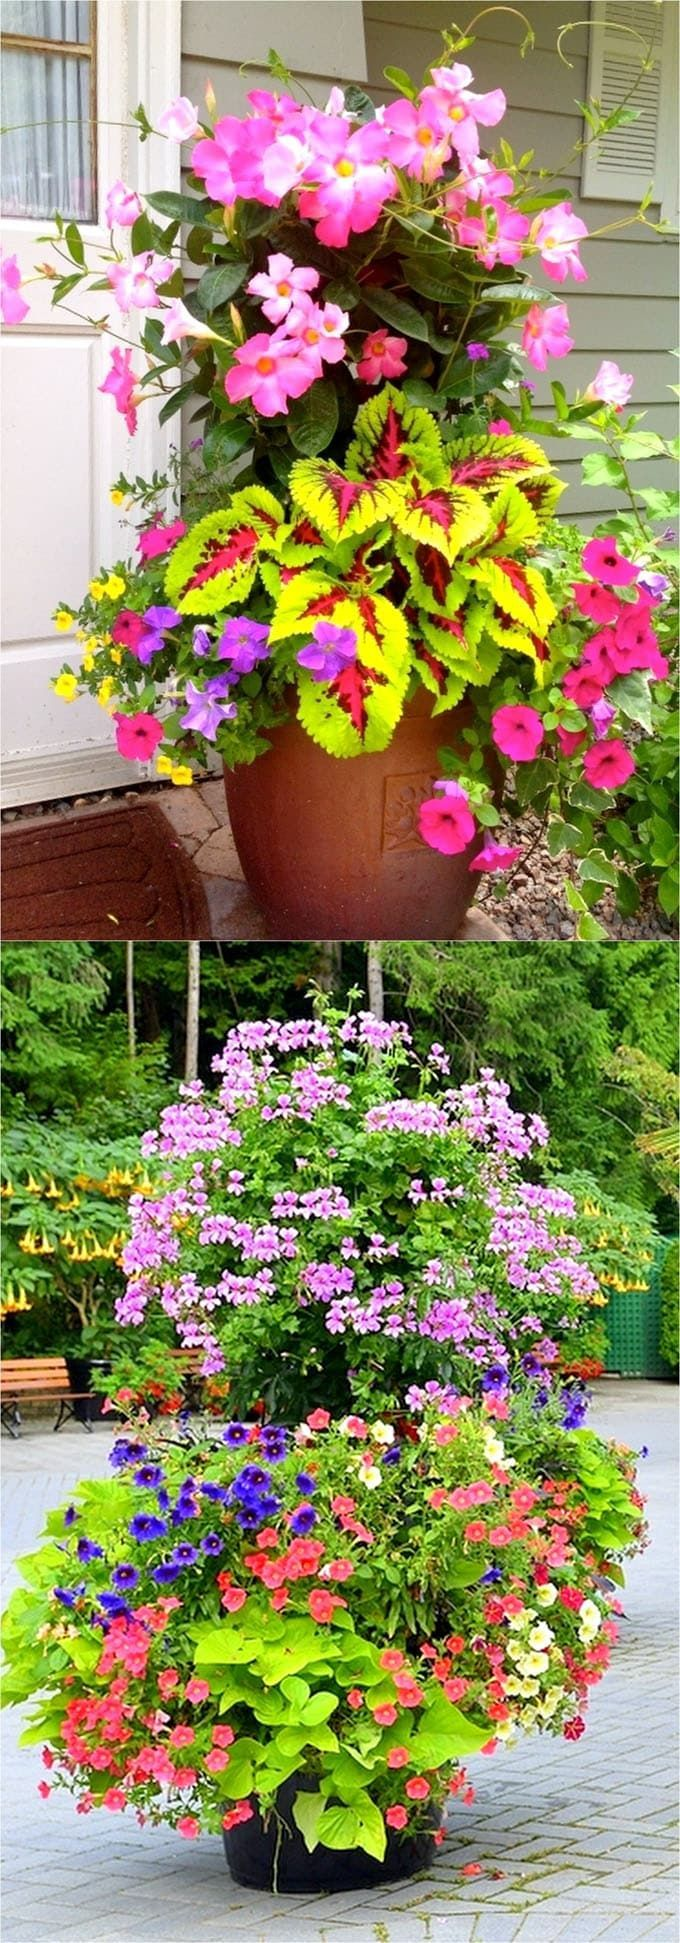 Colorful Flower Gardening In Pots 38 Designer Plant Lists For Each